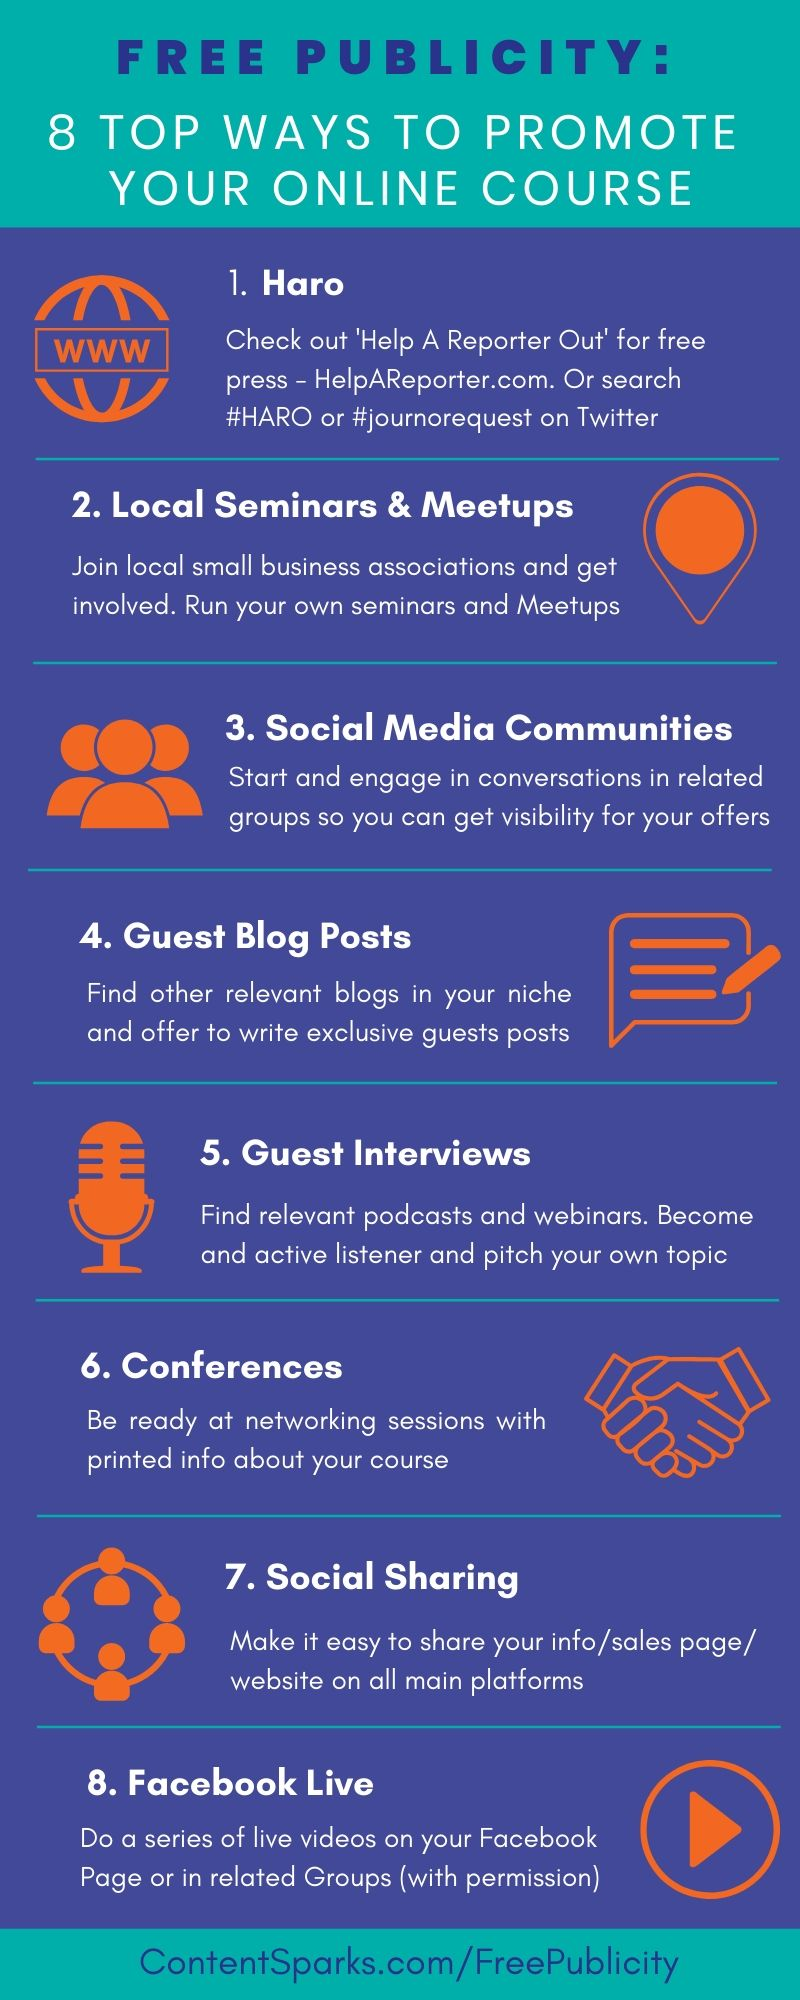 8 Top Ways to Promote Your Online Course 1